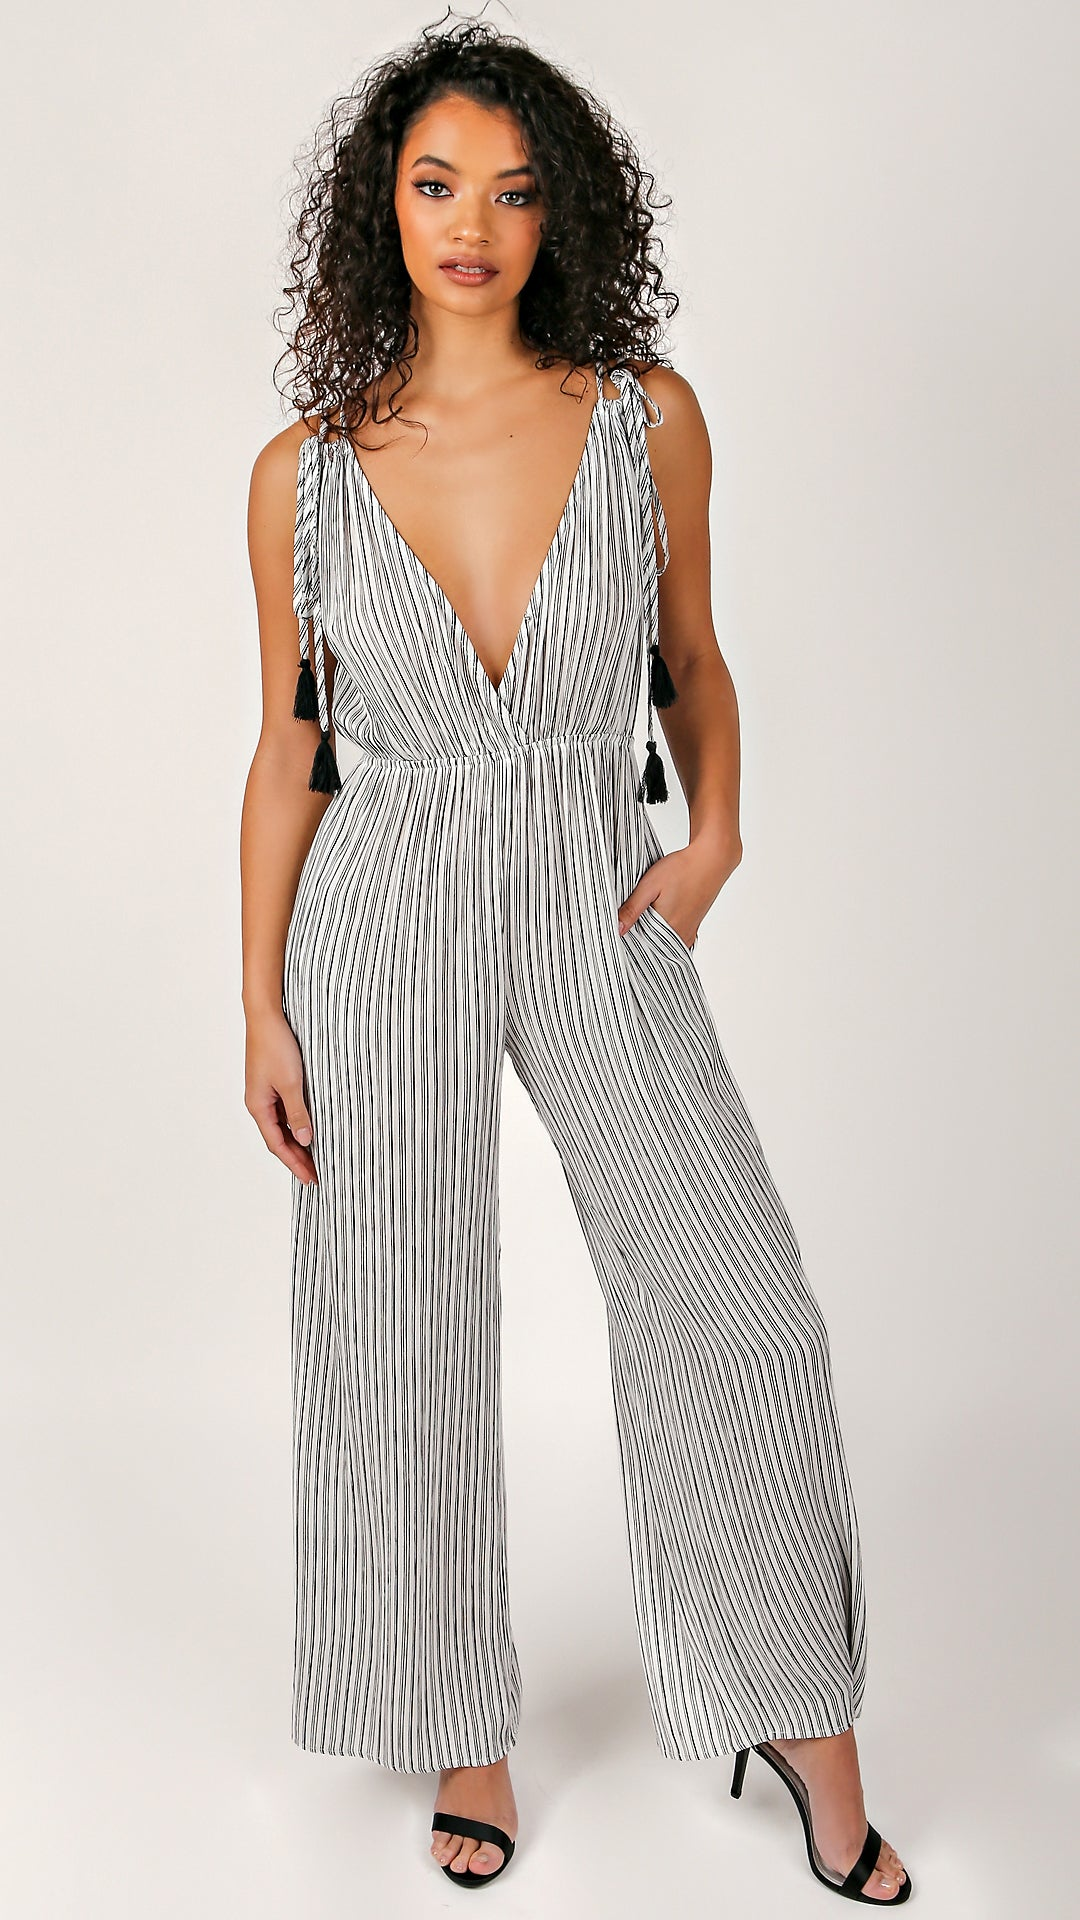 ae959251cee Sexy Rompers + Jumpsuits